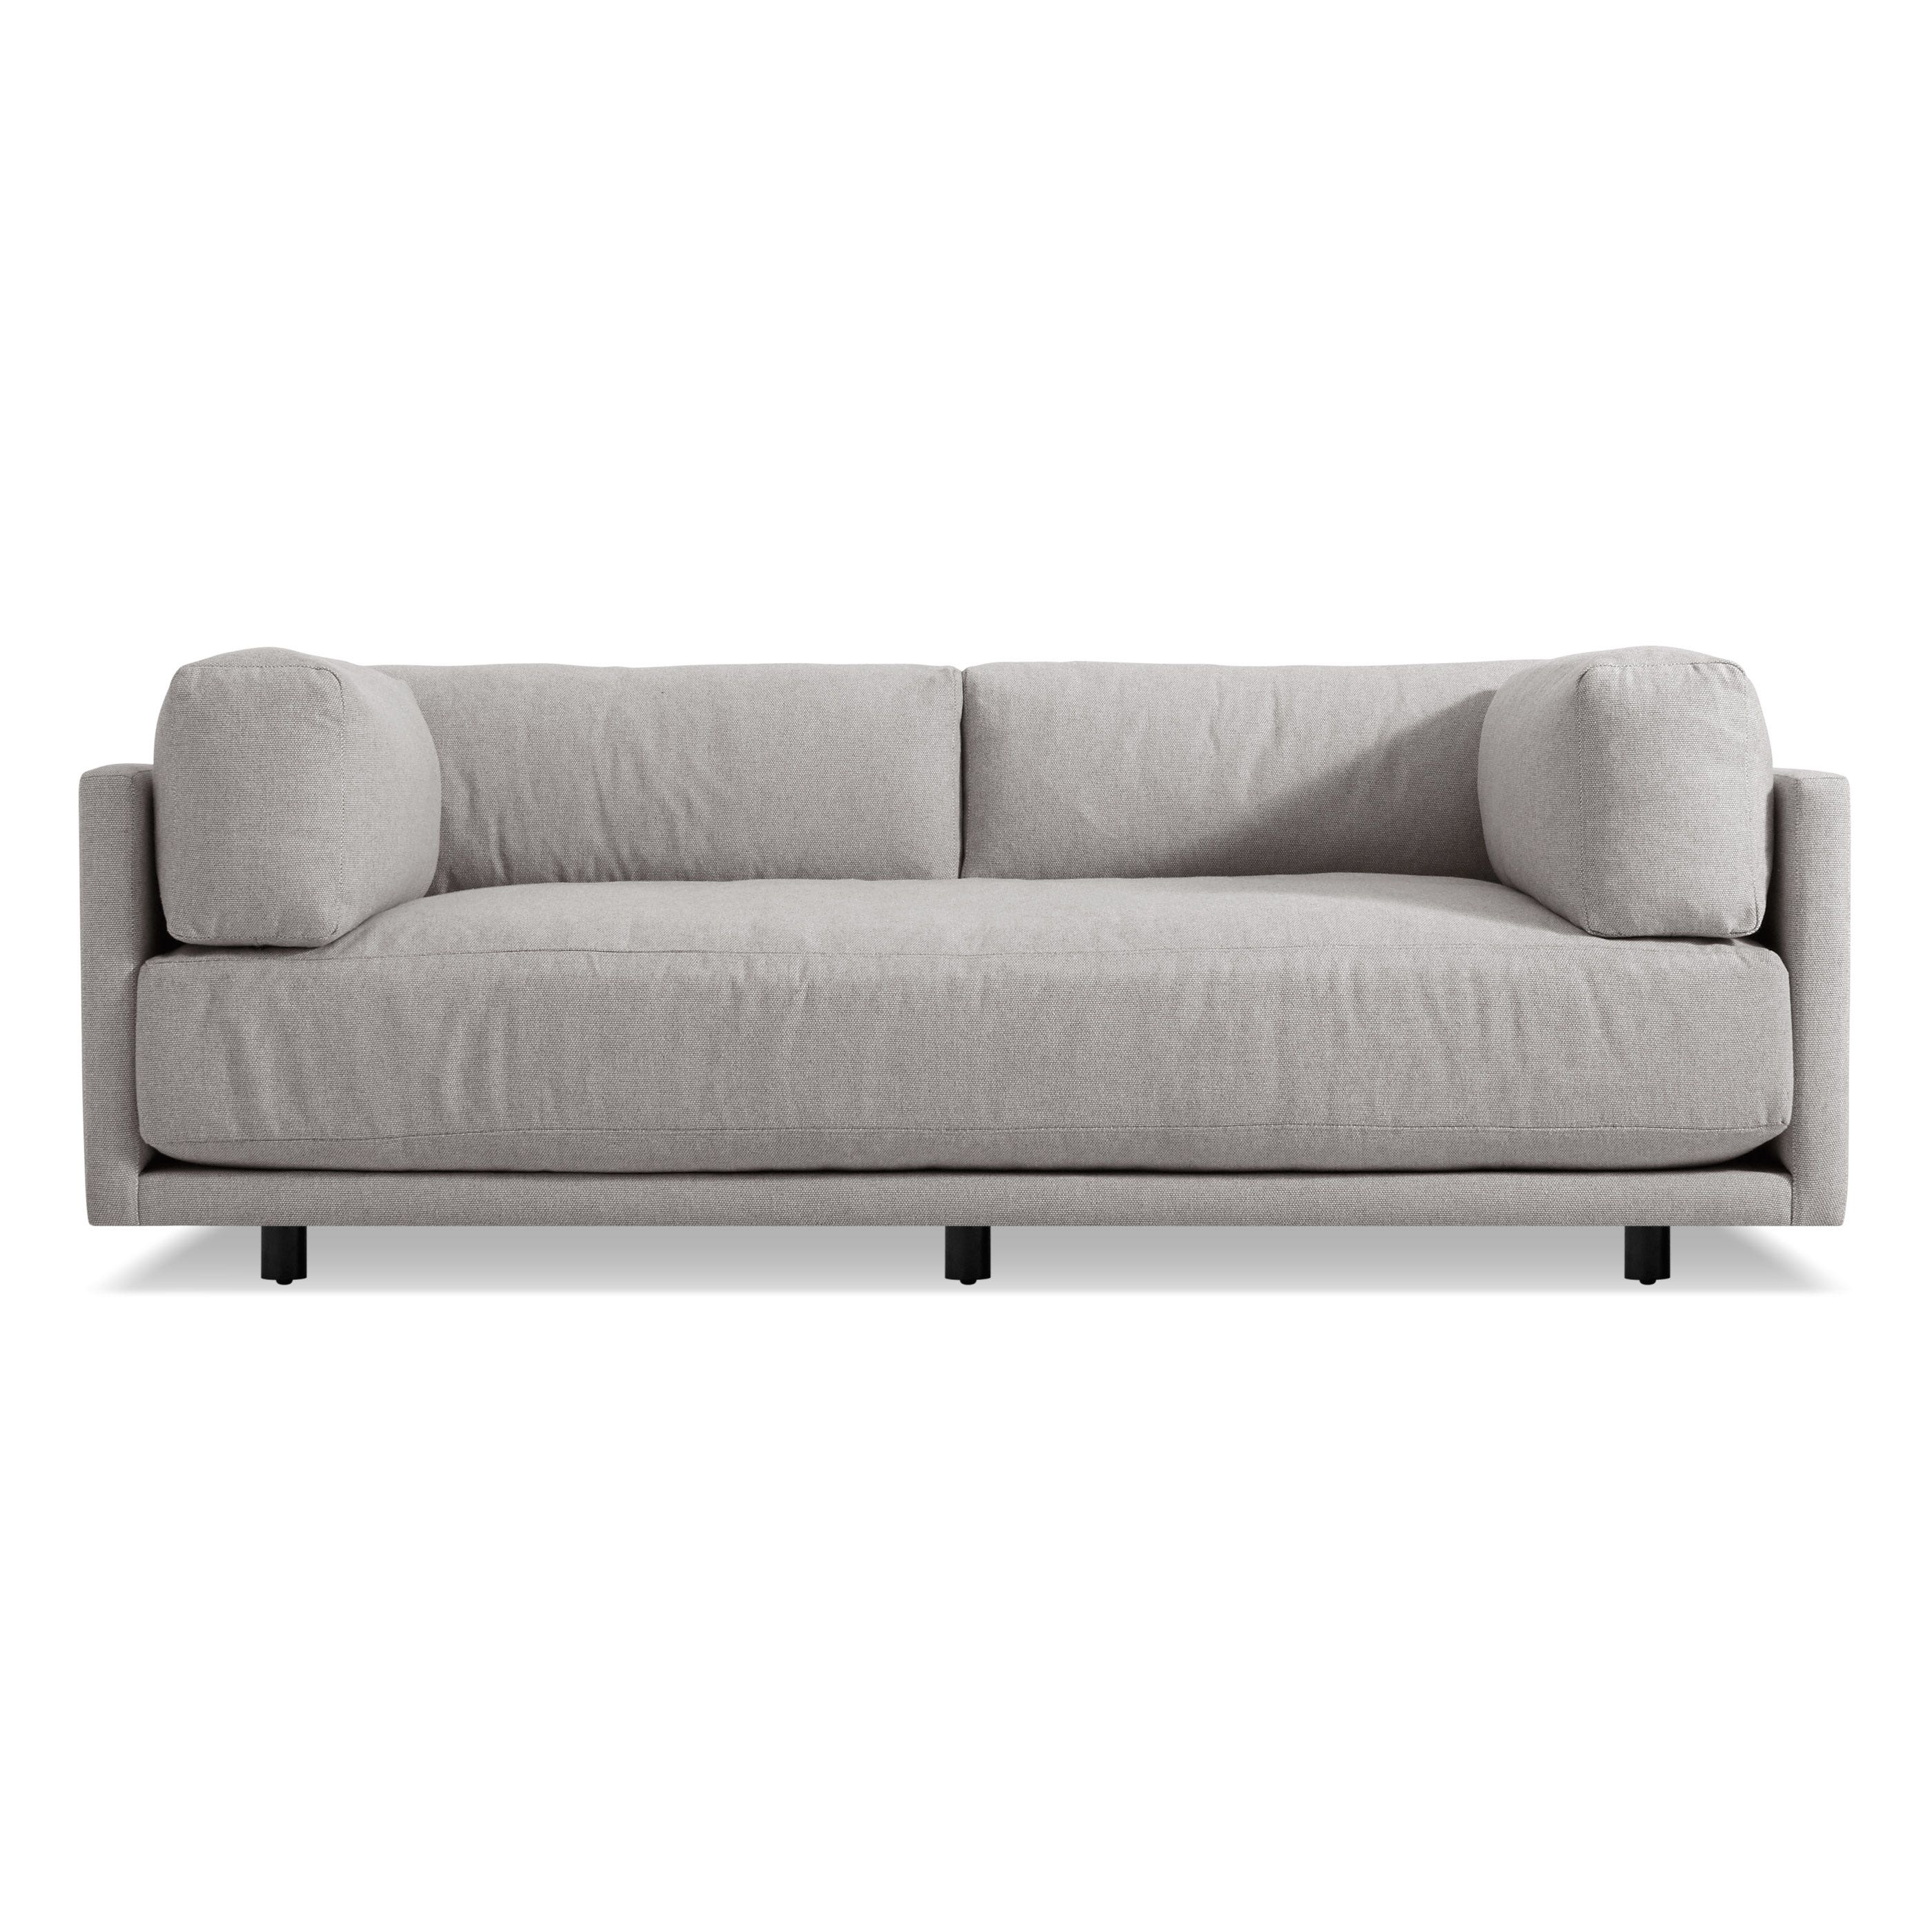 "Sunday 82"" Sofa Modern Fabric Sofa"